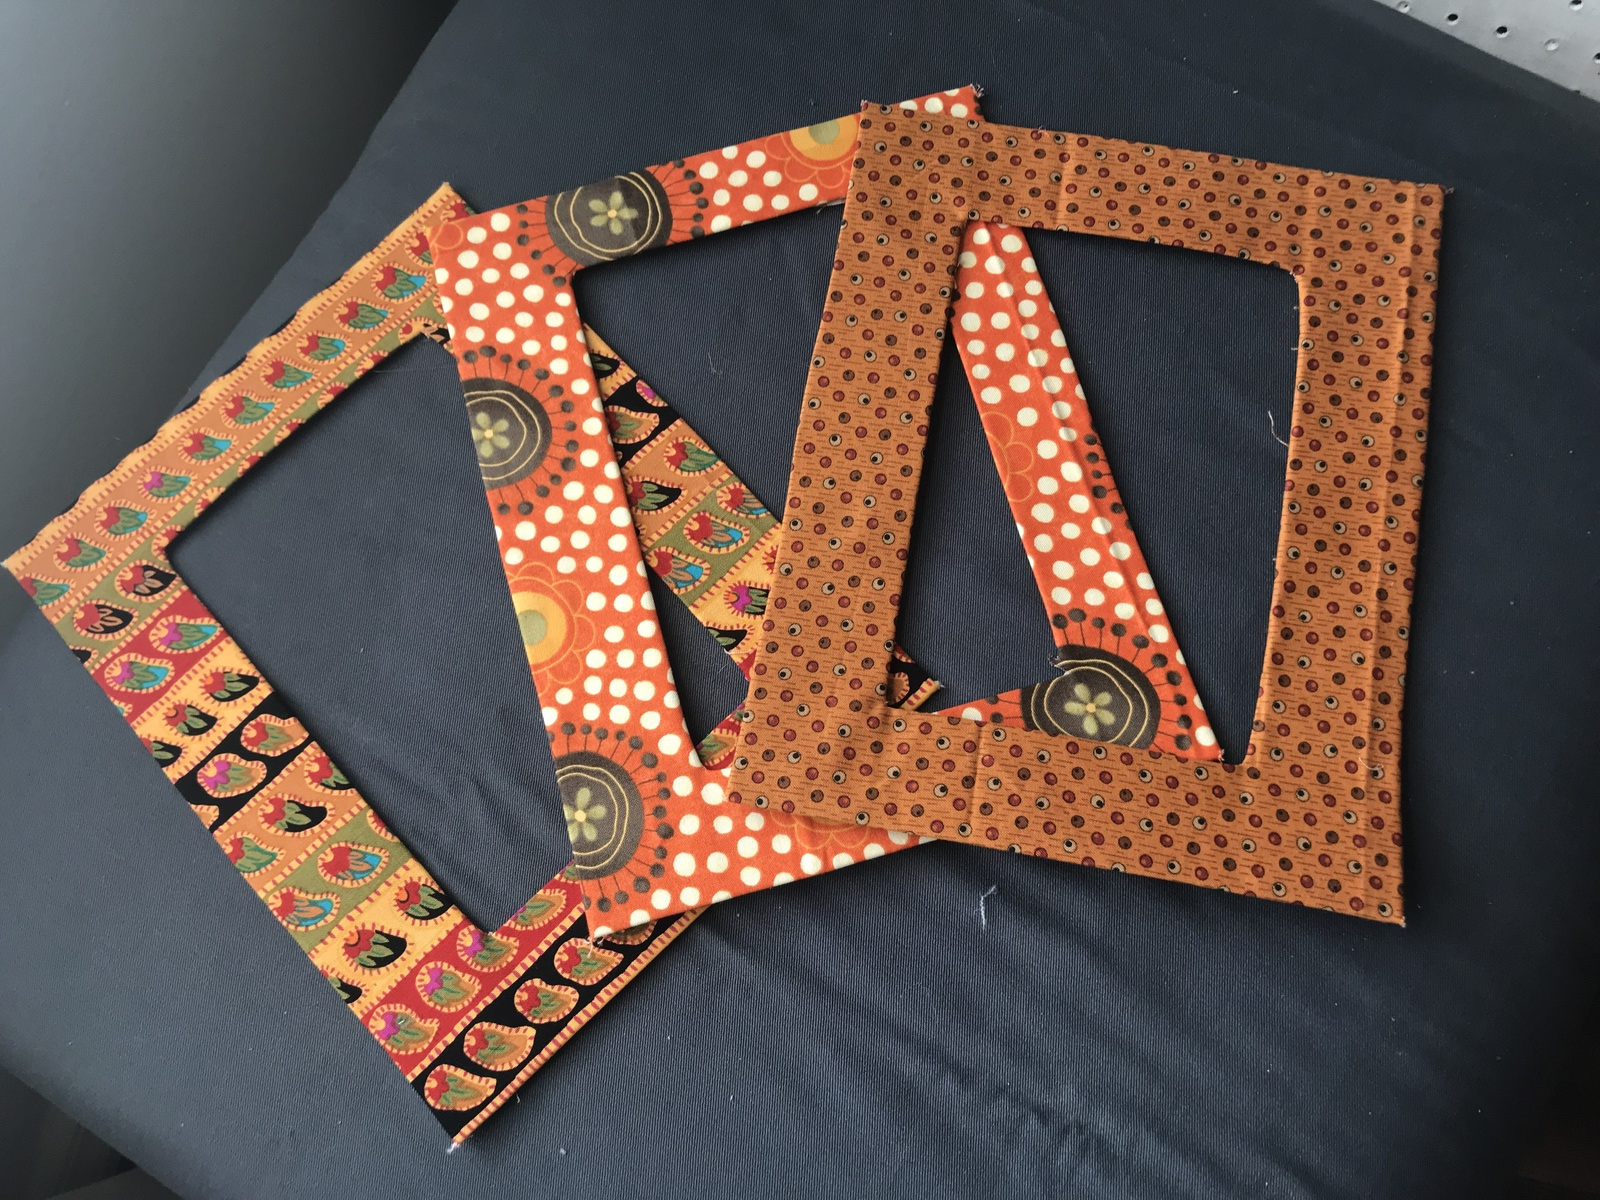 Magnetic Fabric Picture Frames, Orange & Yellow, holds 5x7 picture (min req 2)